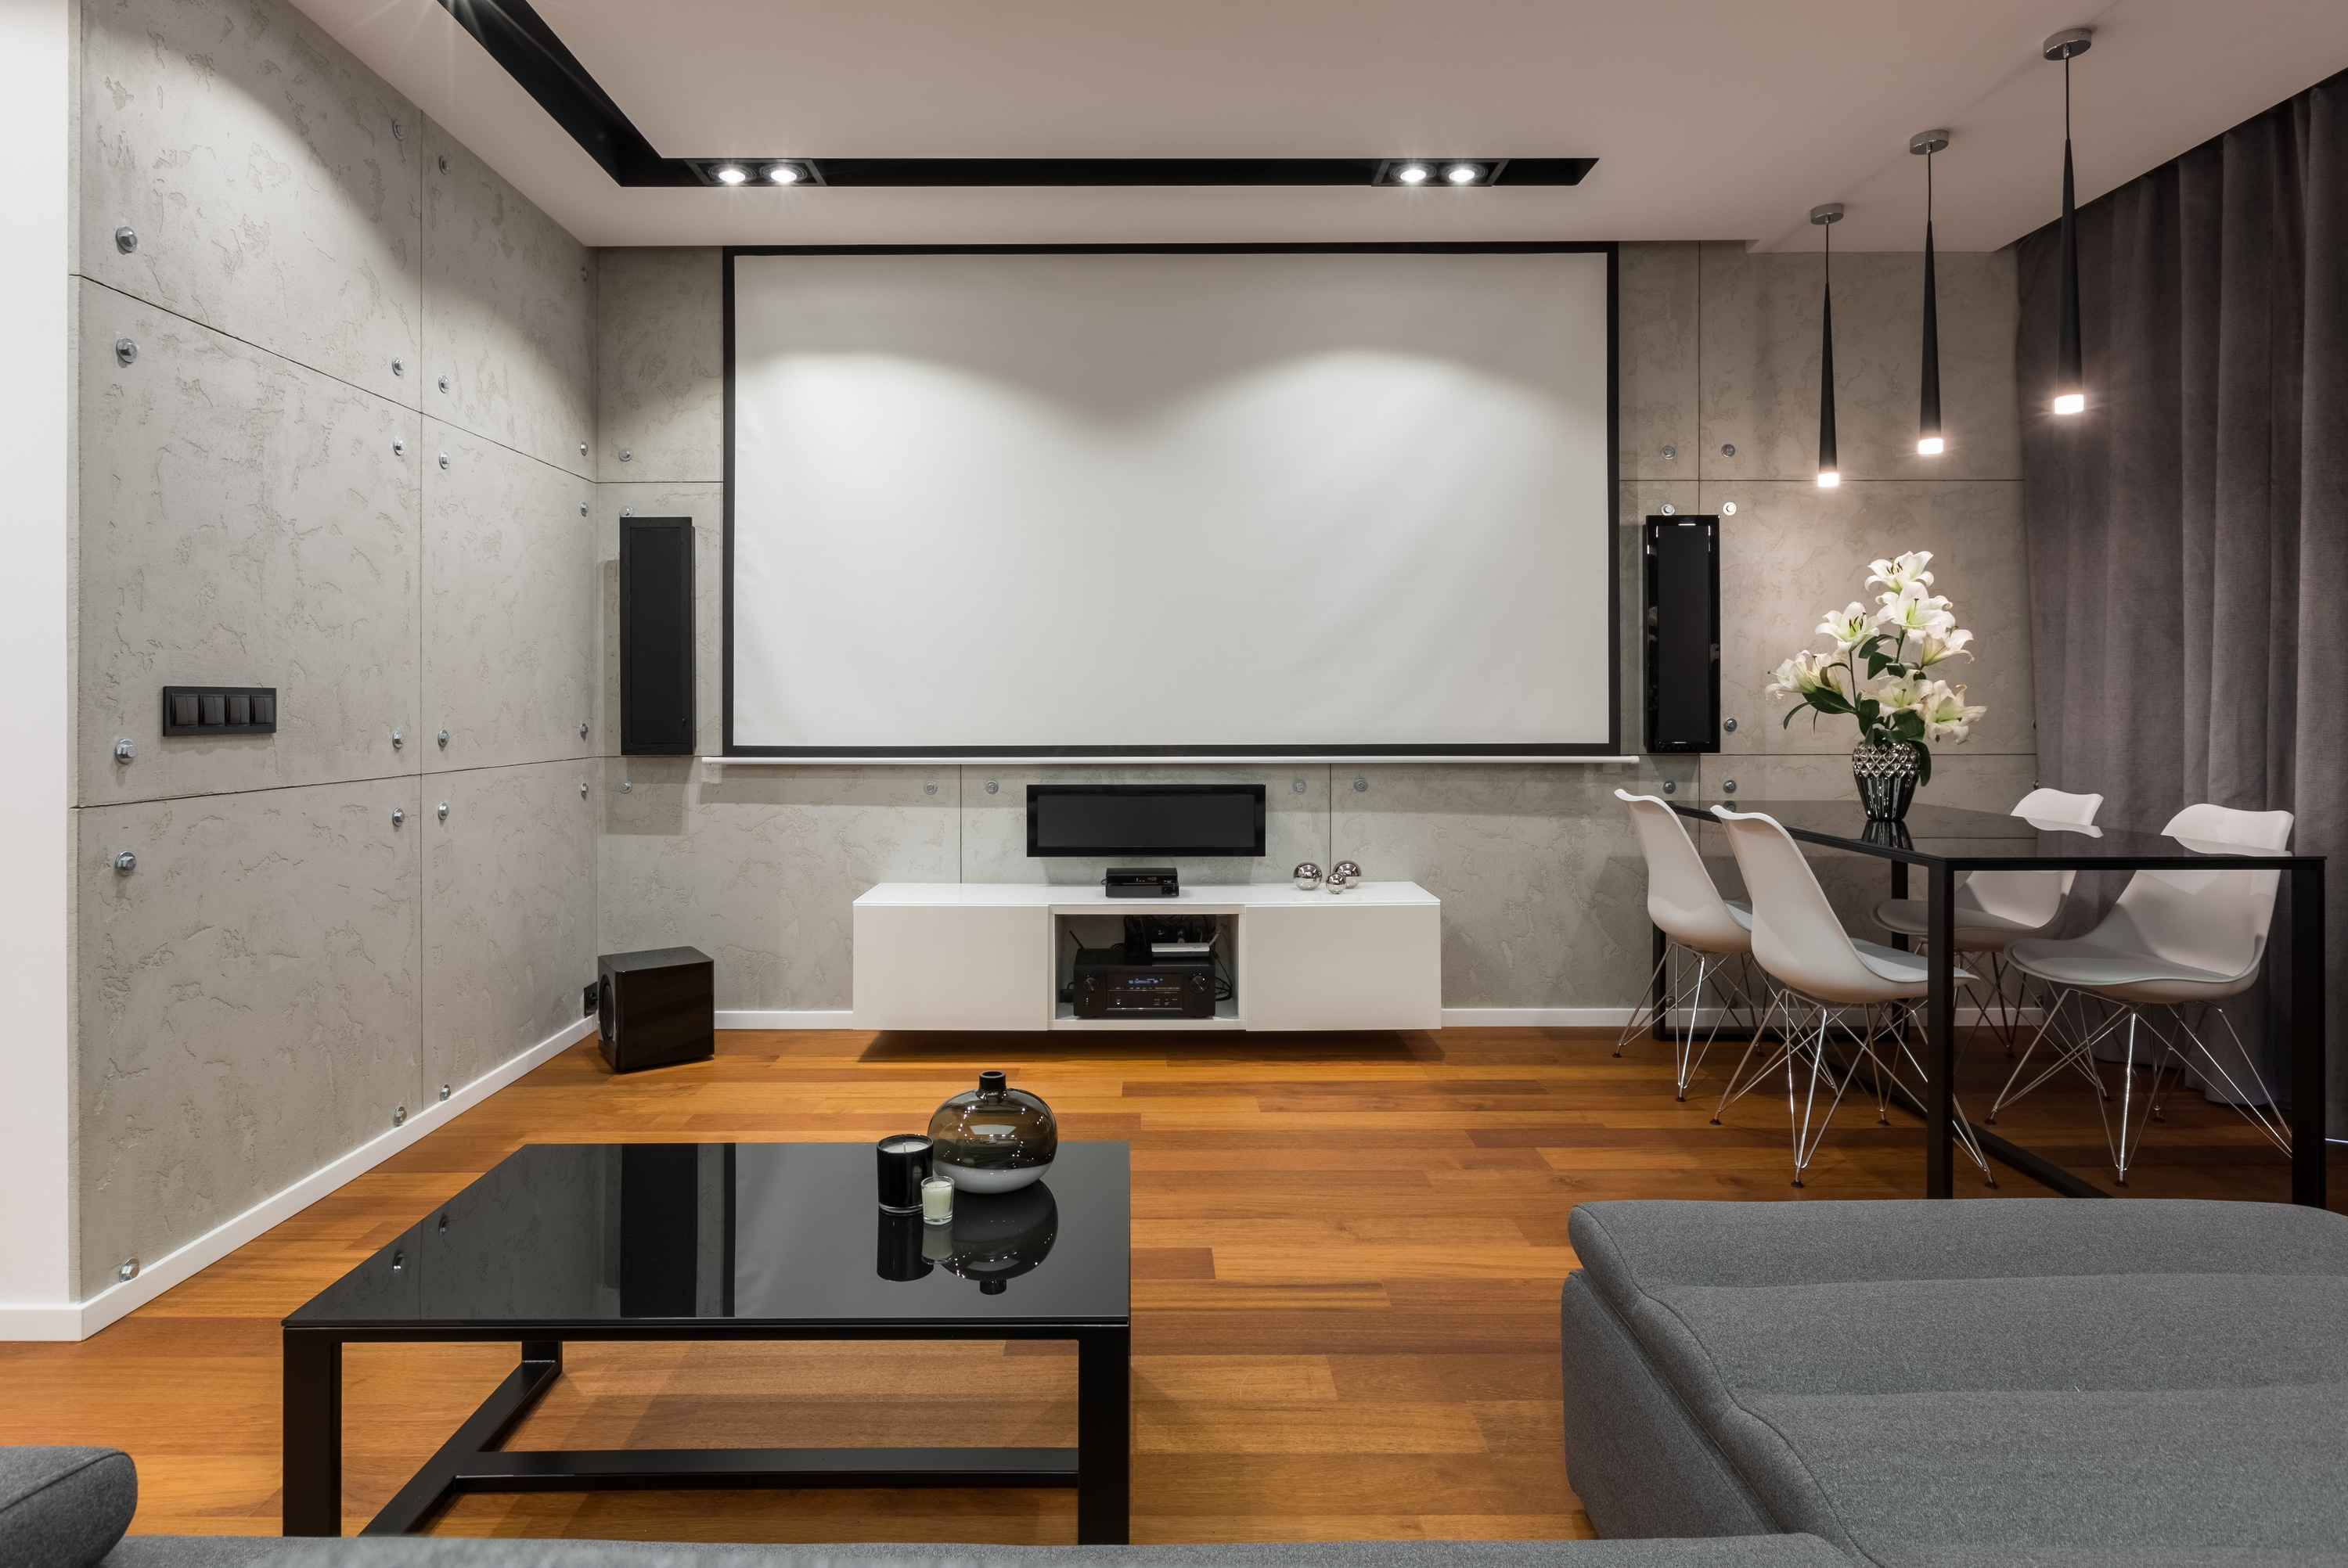 How To Build A Home Movie Theater Room On A Budget